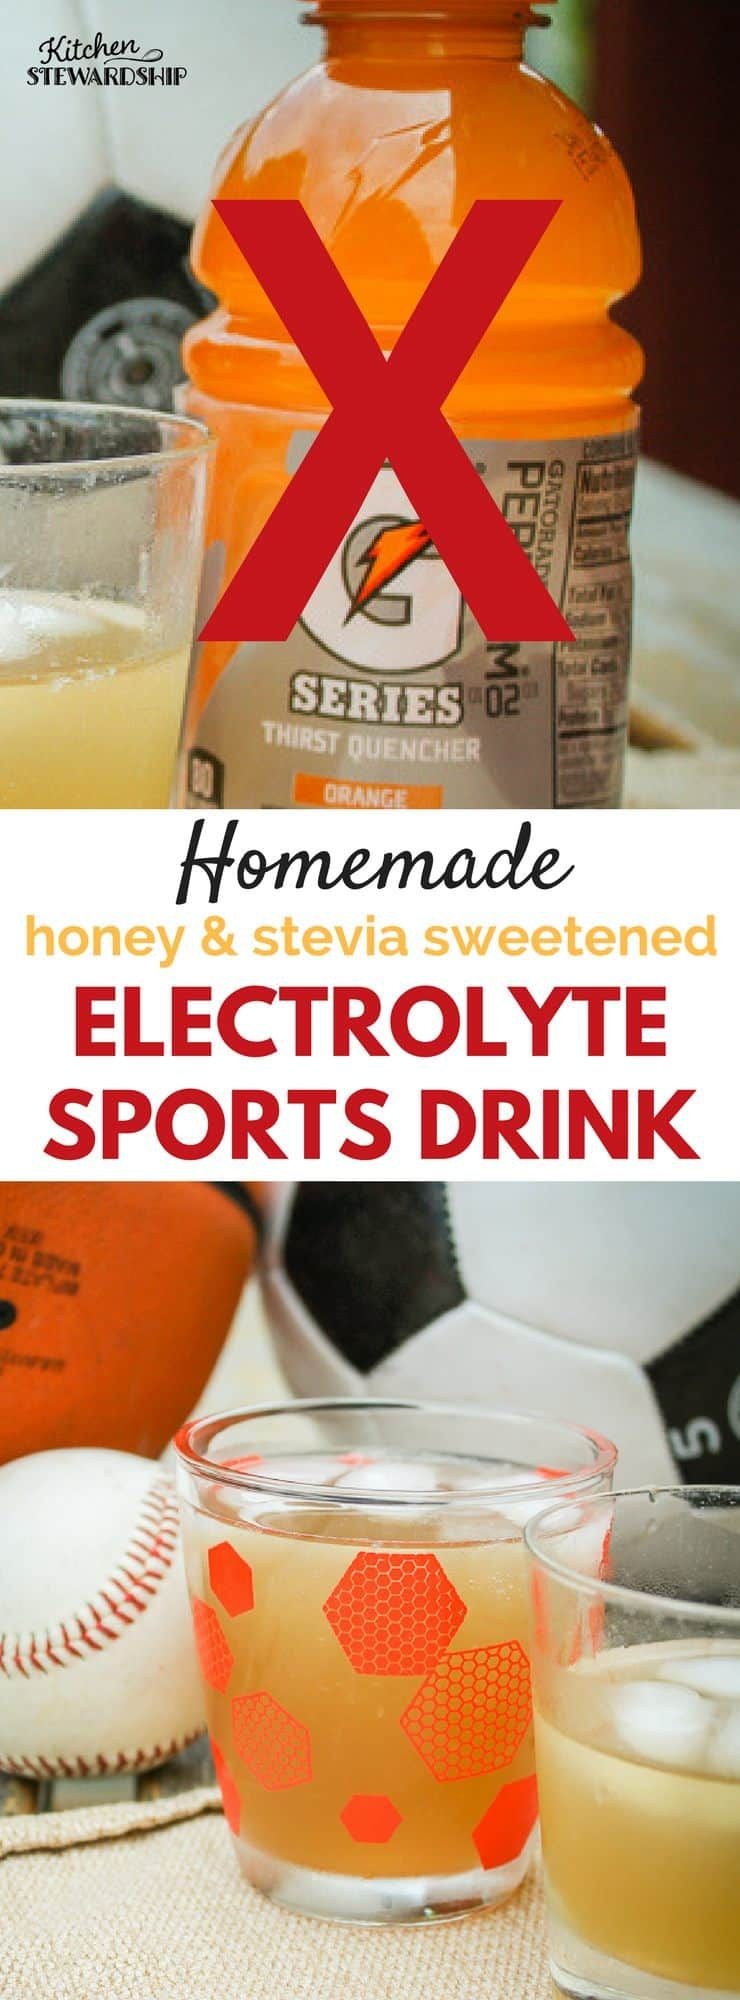 Homemade Electrolyte Sports Drink (Honey & Stevia